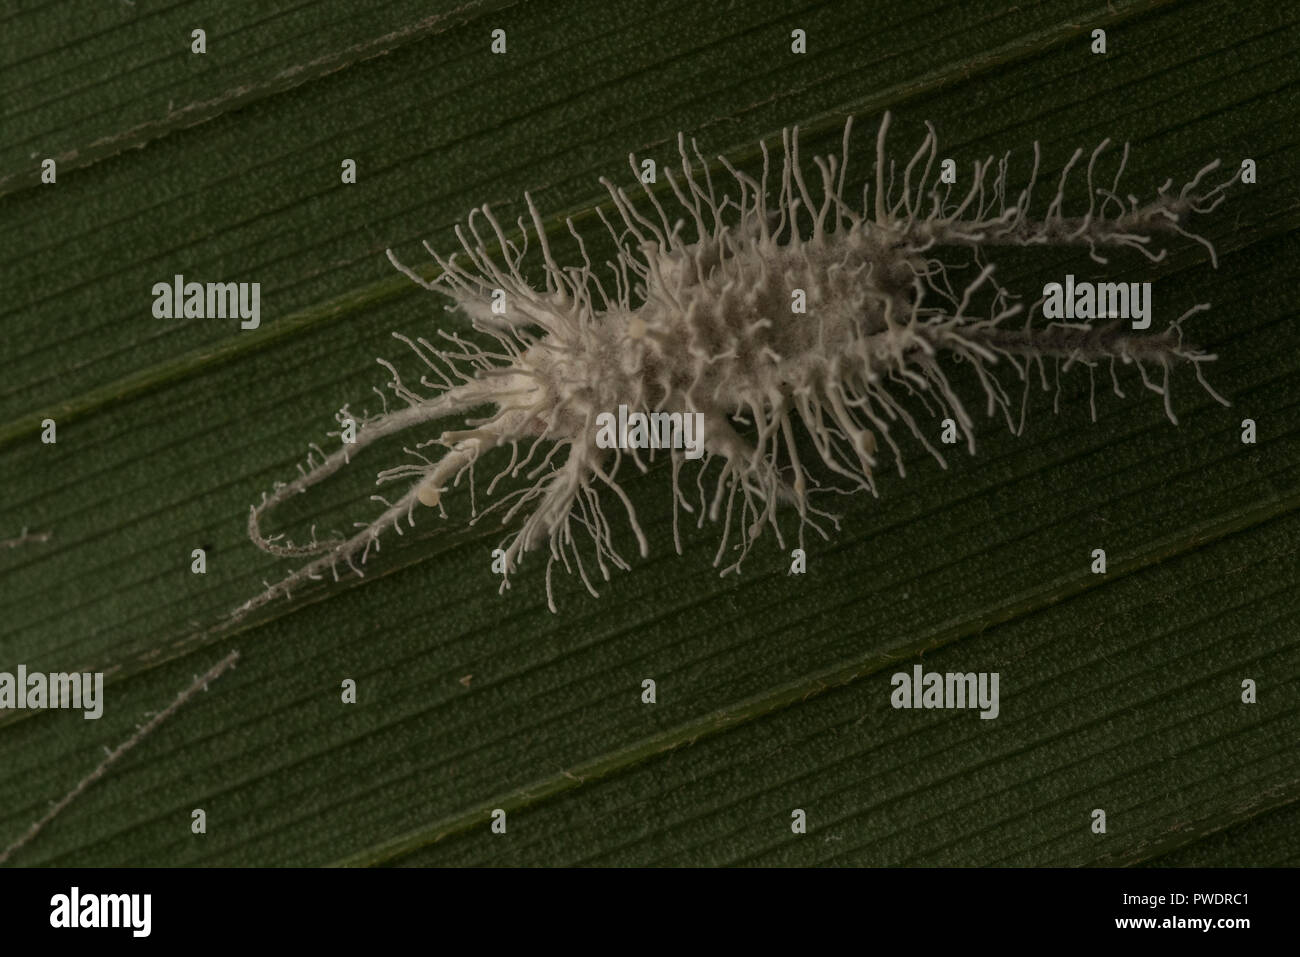 A parasitic entomopathogenic fungus that has taken over and killed this cricket and is now sprouting from its body and releasing more spores. - Stock Image